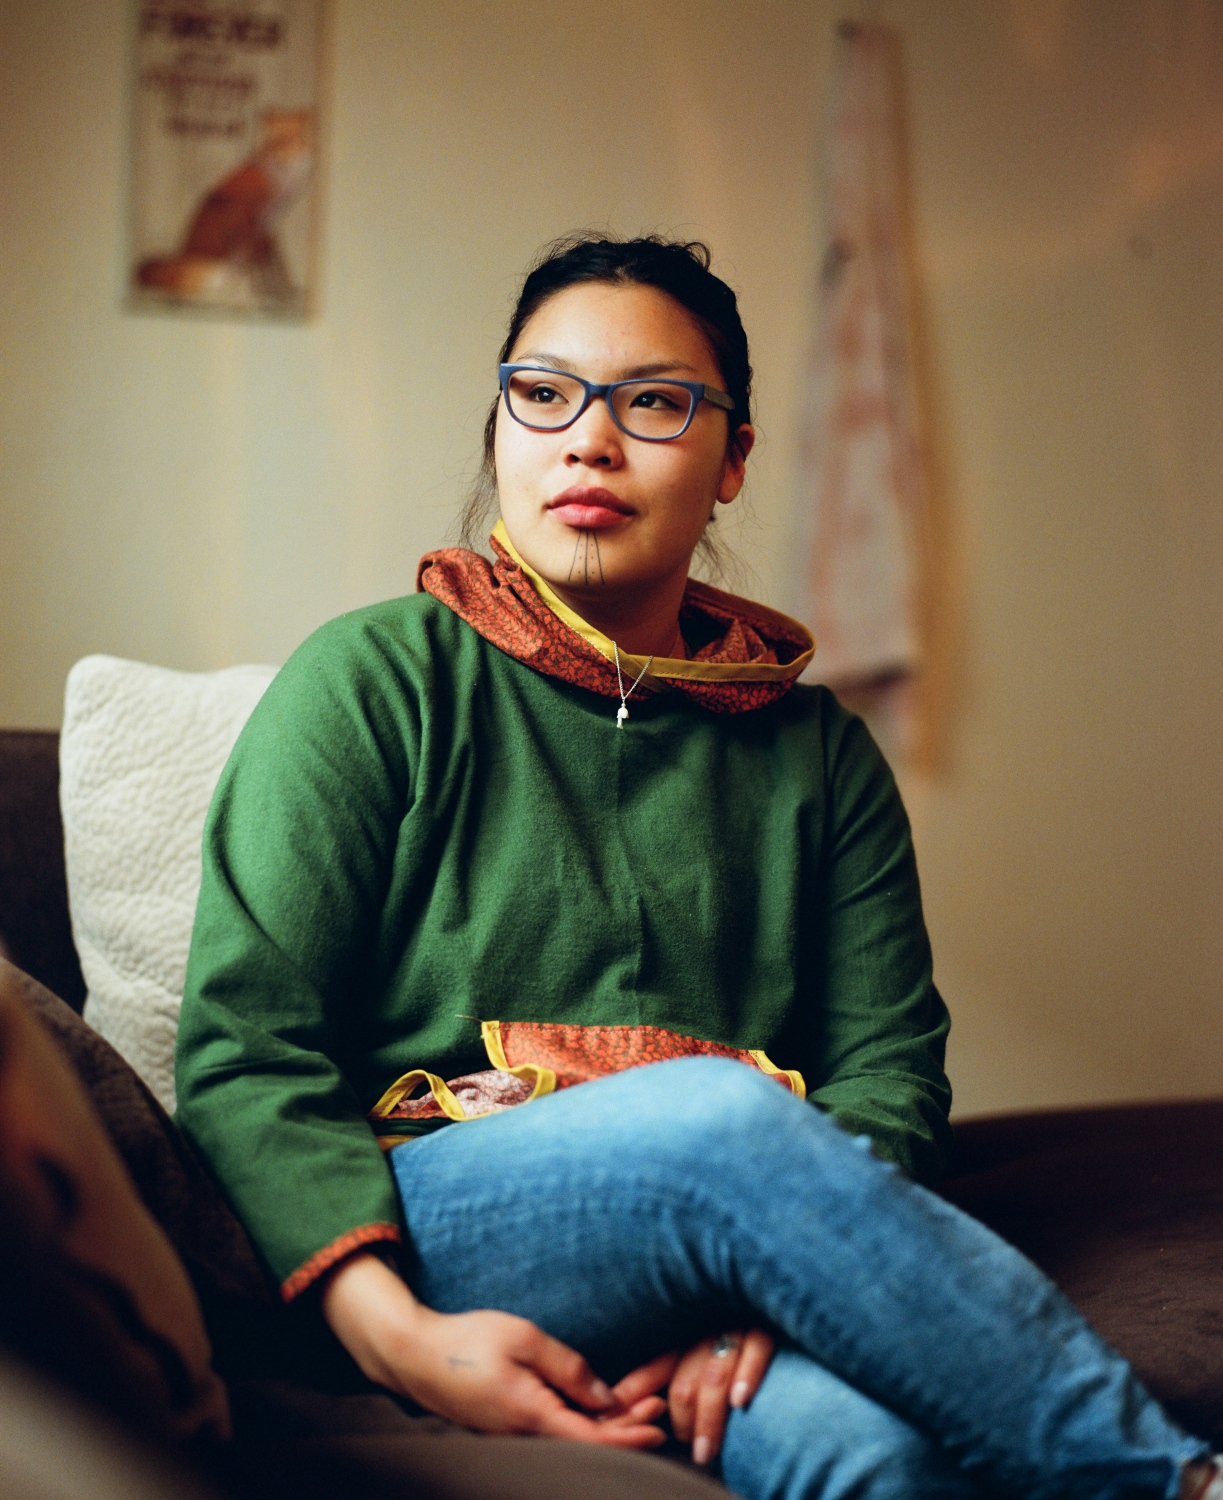 "Danyal Harvey, 20, in her home in Anchorage, Alaska. Harvey was tattooed by Sarah Whalen-Lunn when she was 19 in Feburary 2018. She says that getting her tattoo was a decision that she spent a lot of time thinking about, but that once she did it, she felt like a more complete person. Her Inupiaq language instructors had the chin tattoos, and she says that when she first saw them, she thought, ""these women are so beautiful and strong in their culture and they make me want to be better and learn more about my culture.""  Harvey grew up in the village of Noorvik until she was 7, but then spent life between Fairbanks and boarding school in Galena before coming to Anchorage. When she would return to the village for summers, she says that she often felt out of place.  ""When I went back to Noorvik, people said that I sounded like a white girl,"" she says. ""I was like, 'I literally have no choice about that. I grew up basically in the city. I didn't have a chance to be in the village like the rest of you.' So, I feel like my tavlugun is saying like, 'hey, I'm Inupiaq, too. I'm from here. I'm still one of you'.""  One of her other reasons, she says, had to do with getting out of an unhealthy relationship. ""When I got my tavlugun, that was a part of it, too. Saying, 'I deserve more. My people have been through so many hardships for me not to be free.' It is a daily reminder that I'm worth all of the love that the world can give me. And that my people, and my ancestors, have been through too much for me to feel captured and to be being abused. That's not for me at all. And it's a daily reminder.""  There have been some criticisms to her tattoo, she says, but not many. When she first posted about her chin tattoo on Instagram, a friend messaged her and told her that she shouldn't have gotten it, that she wasn't appropriately heeding tradition. ""At this point, culture evolves,"" Harvey says. ""This tavlagun to me means something different than what other ladies' tavlaguns mean to them. I feel like people need to know that. That you do need to account for tradition. But when you're trying to bring something back, it evolves."""